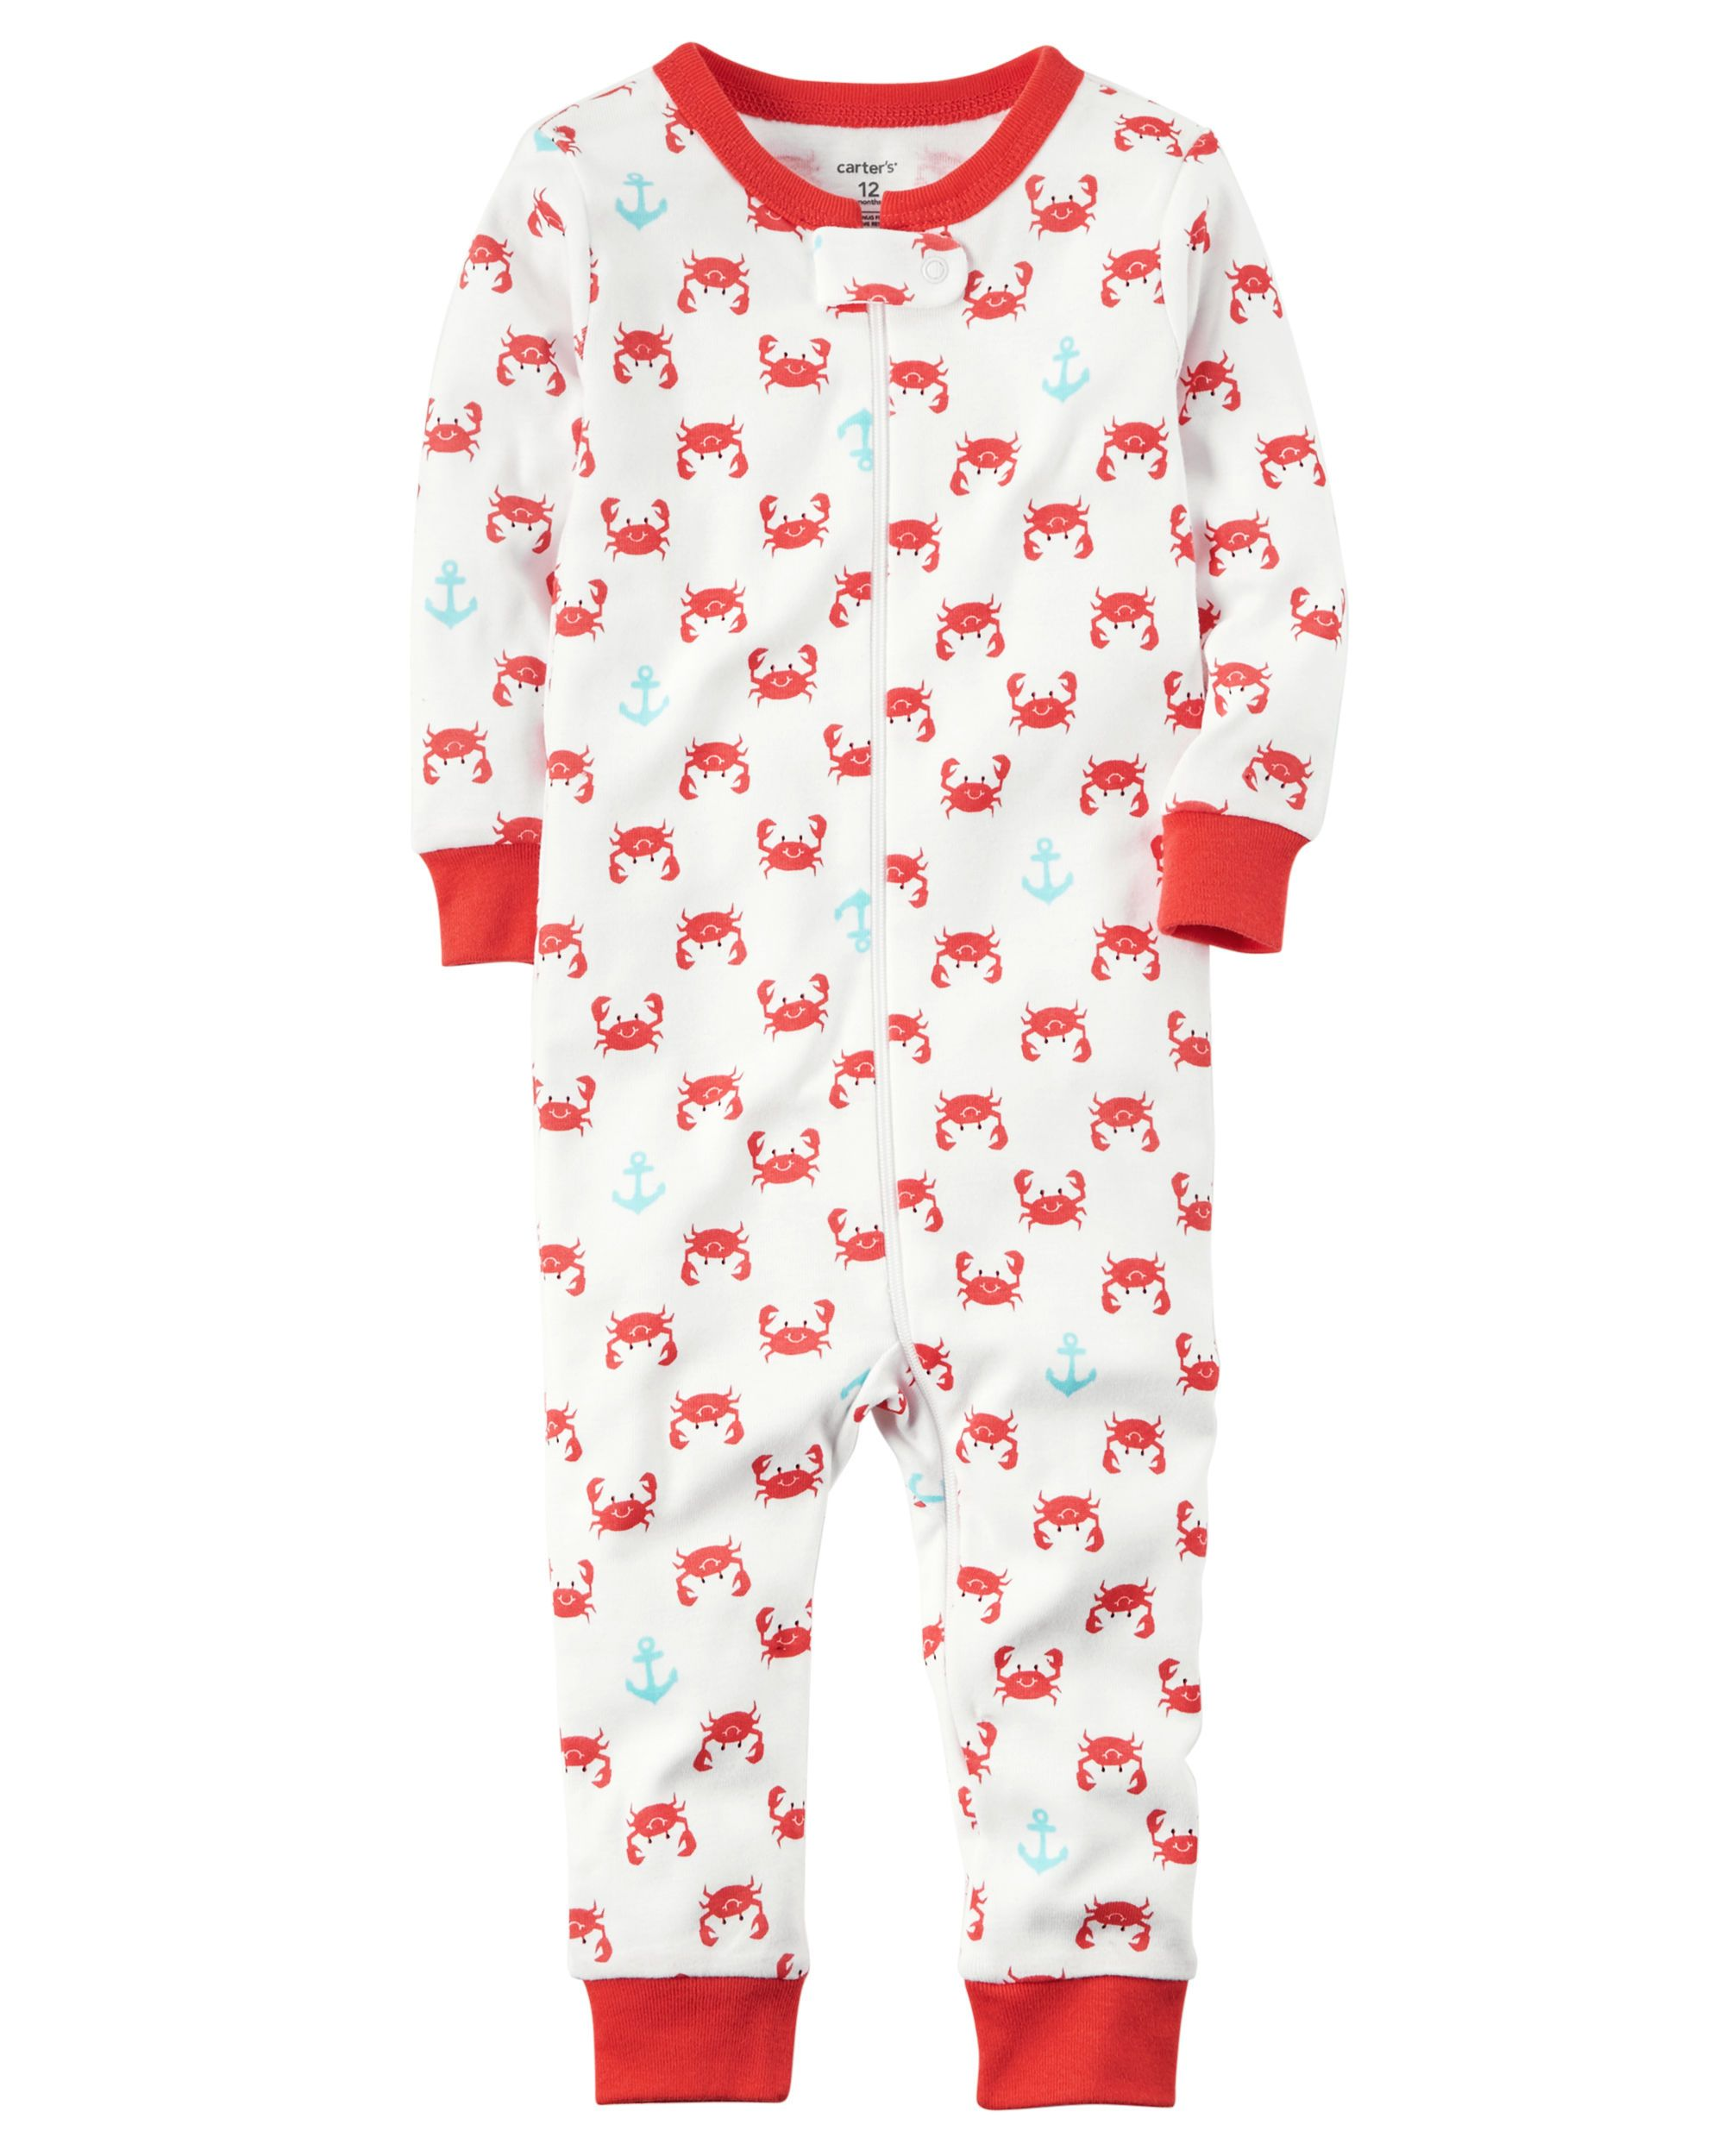 4837b3b4cacb 1-Piece Snug Fit Cotton Footless PJs